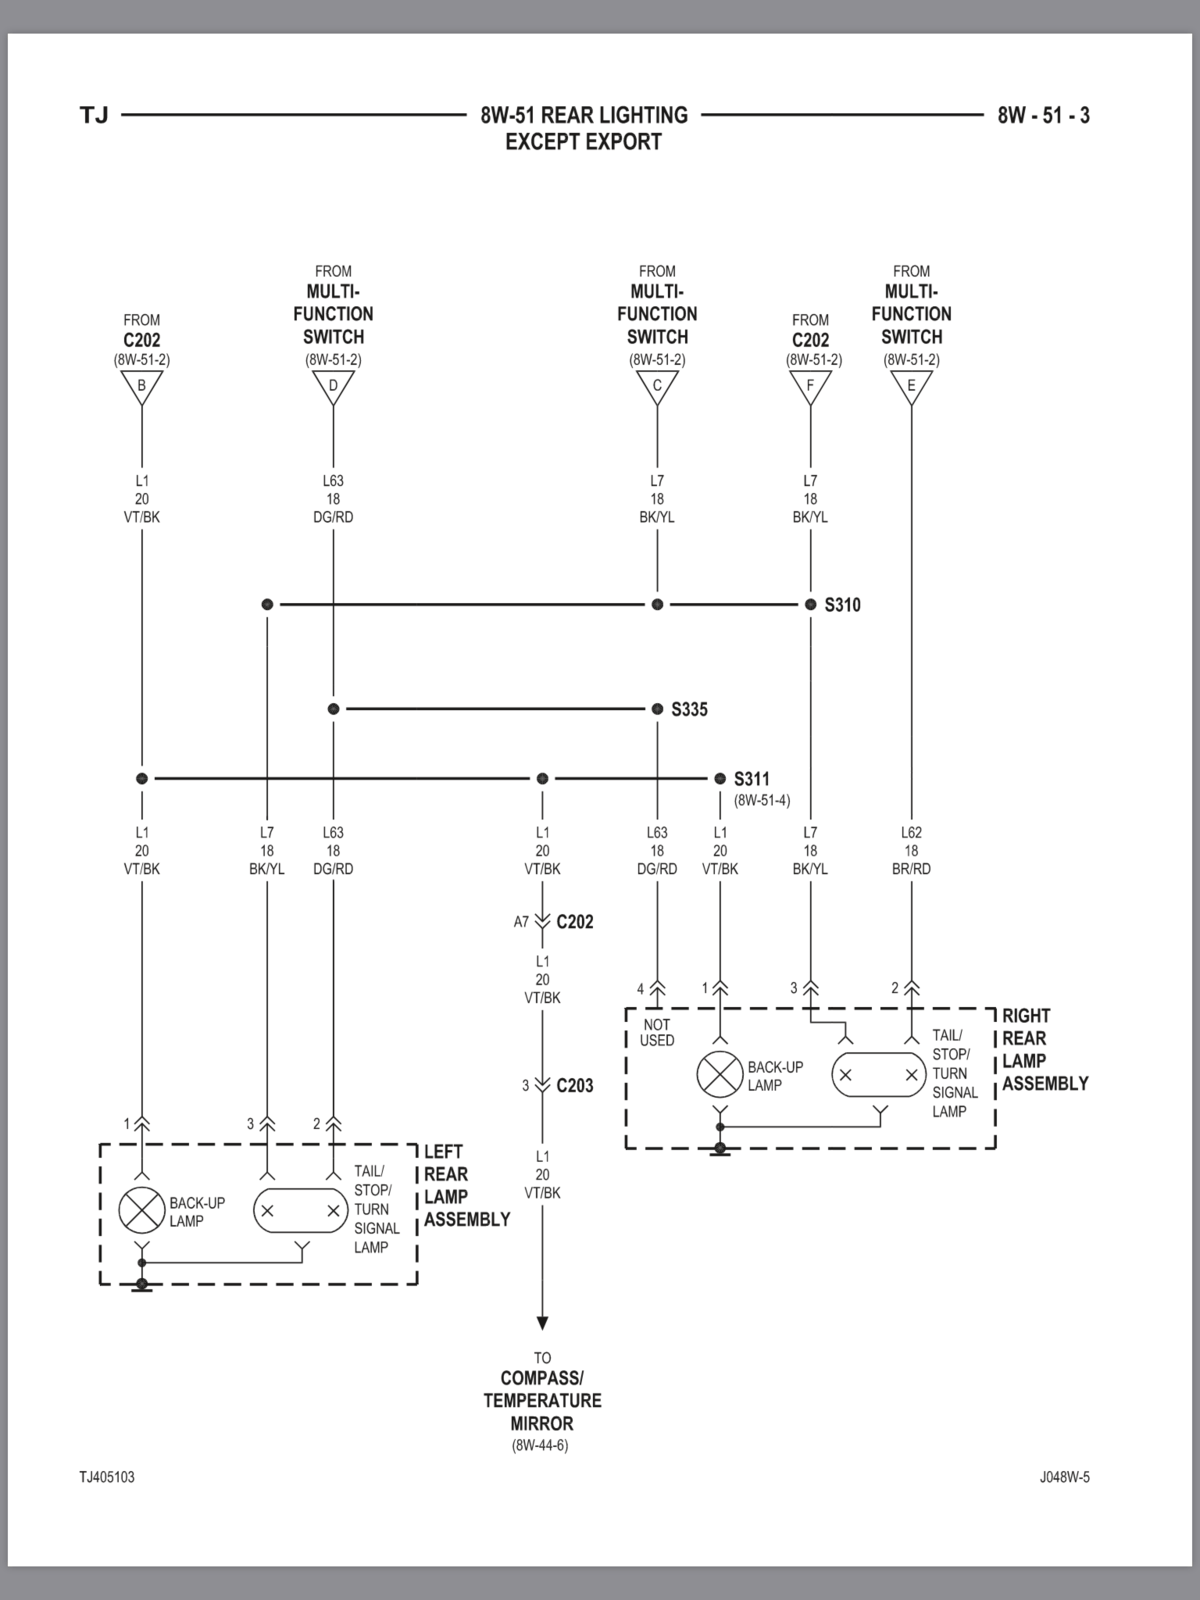 Wiring    Guide or    Diagram         Jeep       Wrangler    TJ Forum